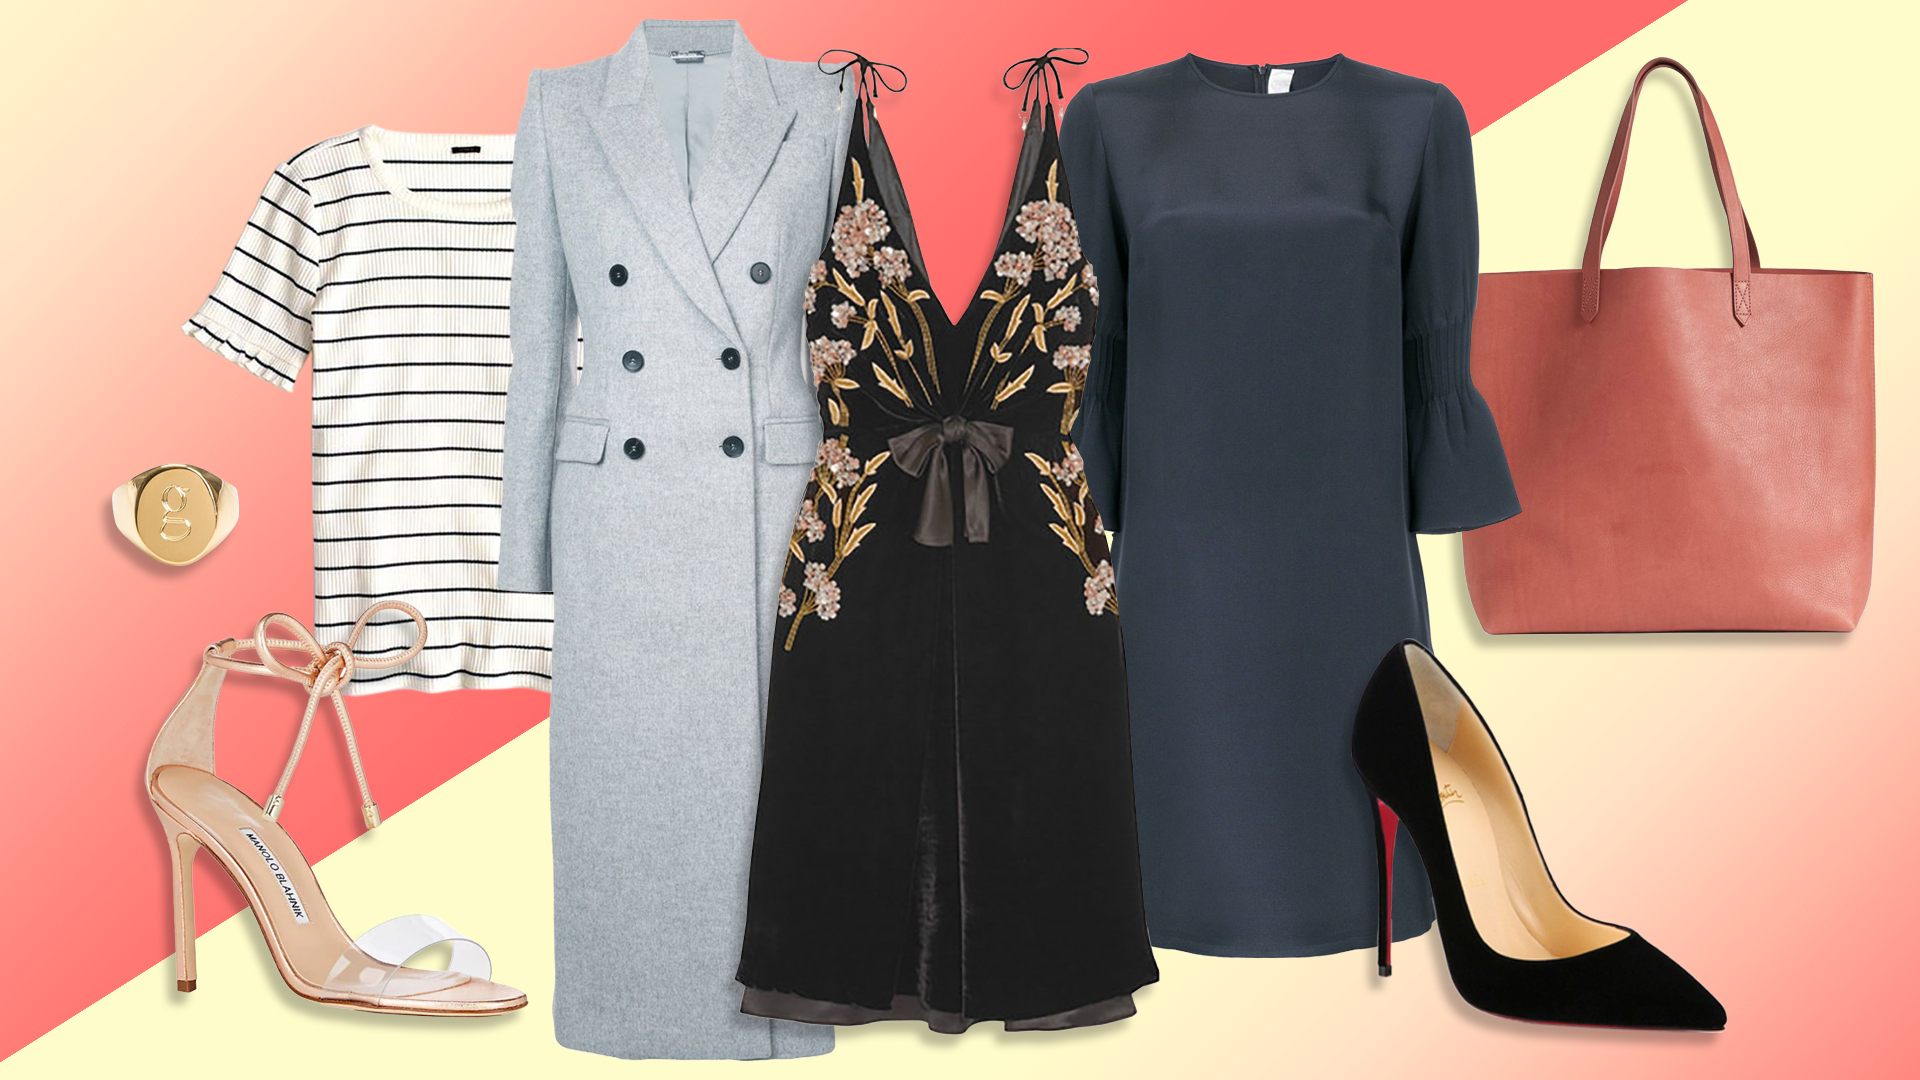 STYLECASTER | Things to Own by Age 30